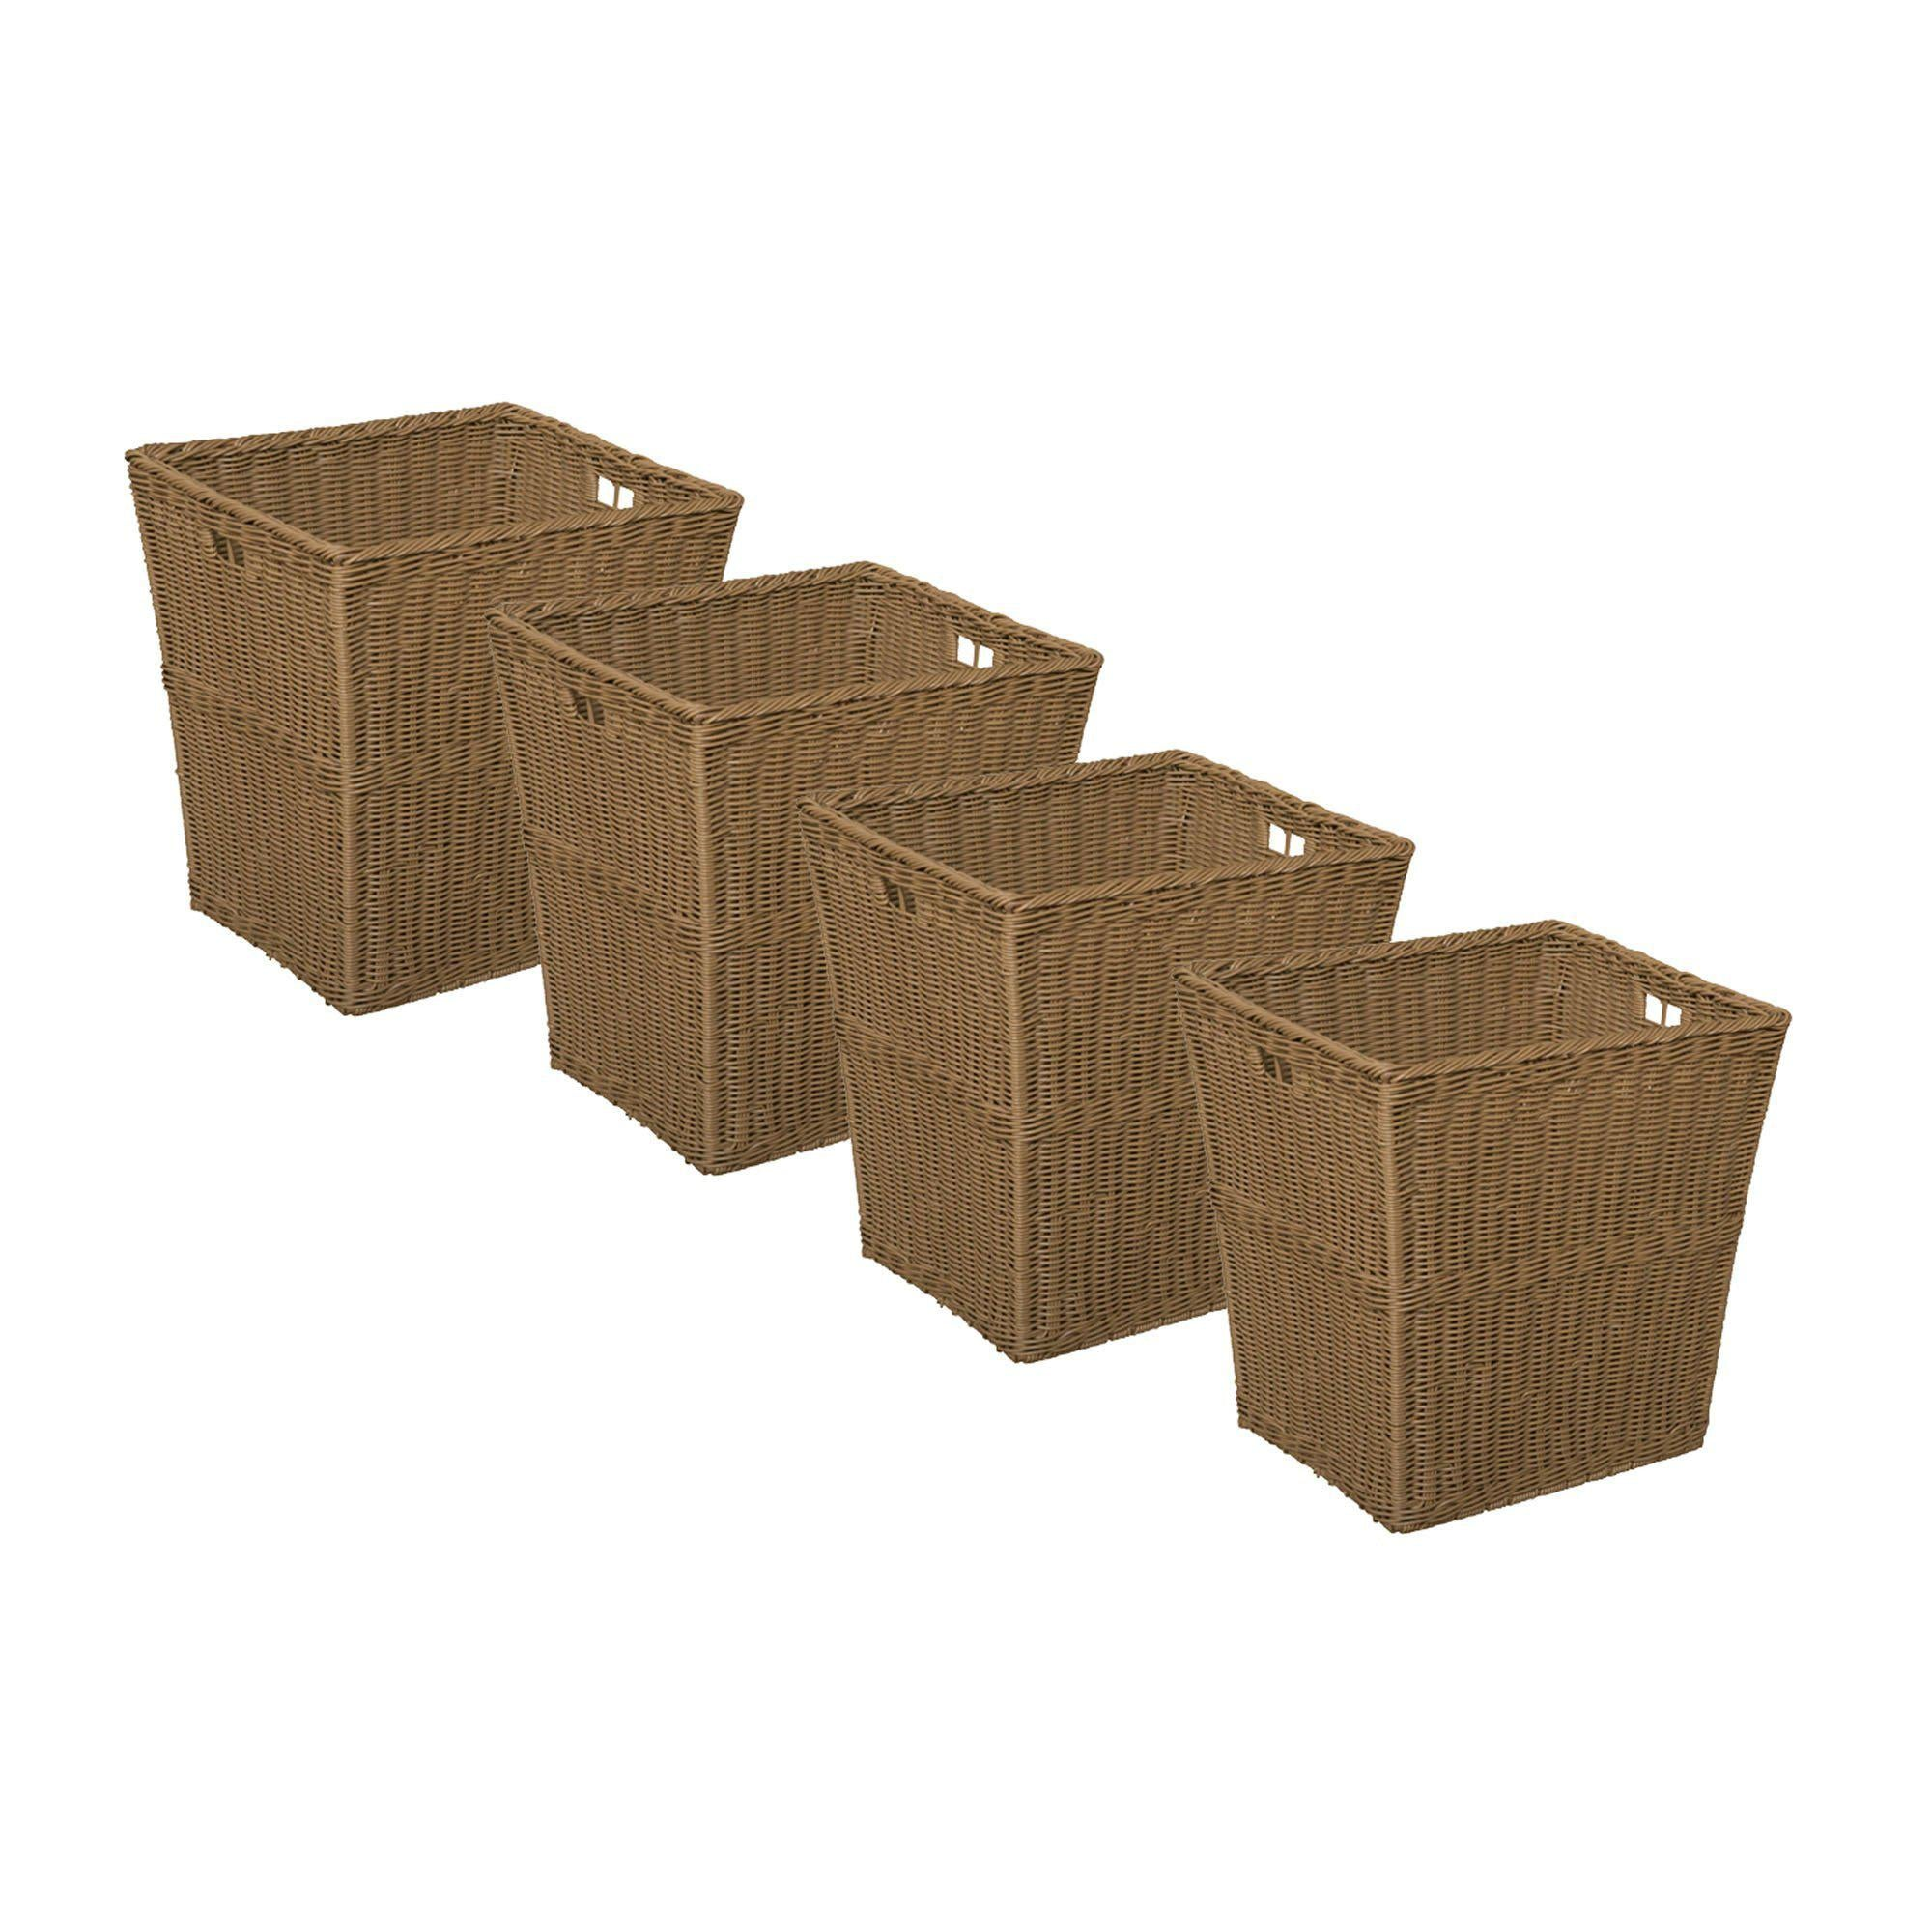 Large Basket- Set of 4